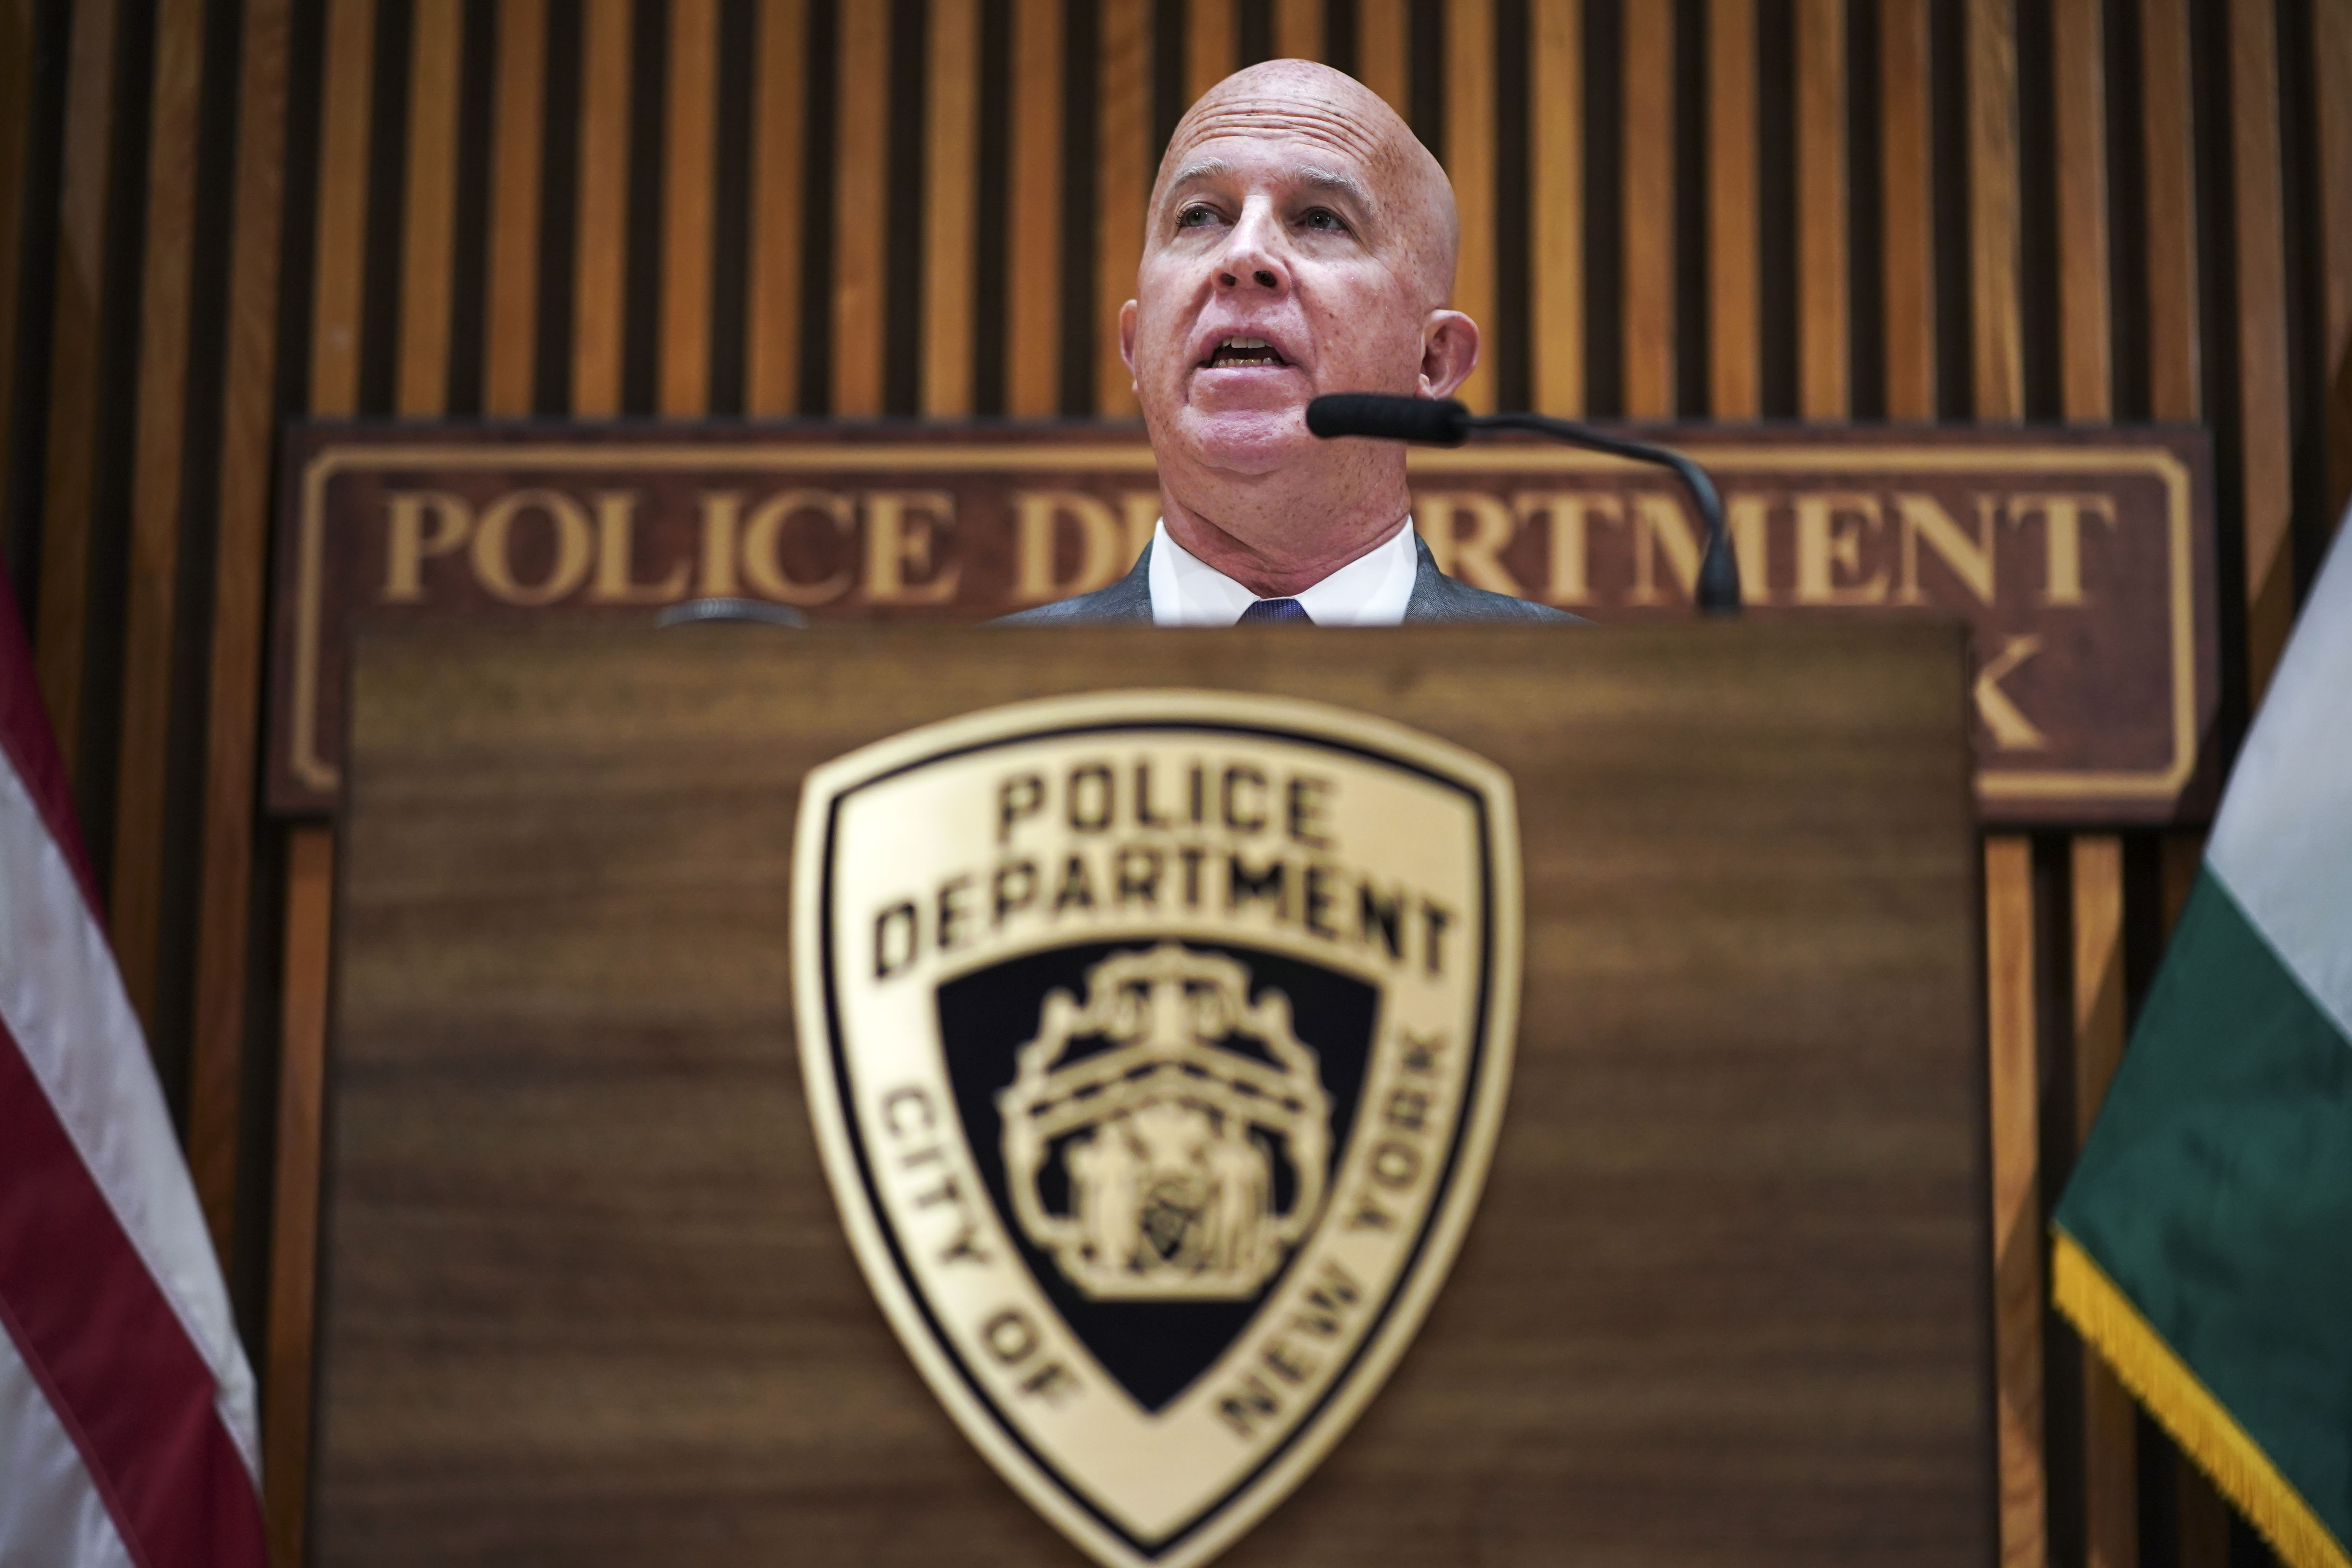 New York City Police Commissioner James O'Neill speaks during a press conference to announce the termination of officer Daniel Pantaleo on August 19, 2019 in New York City.